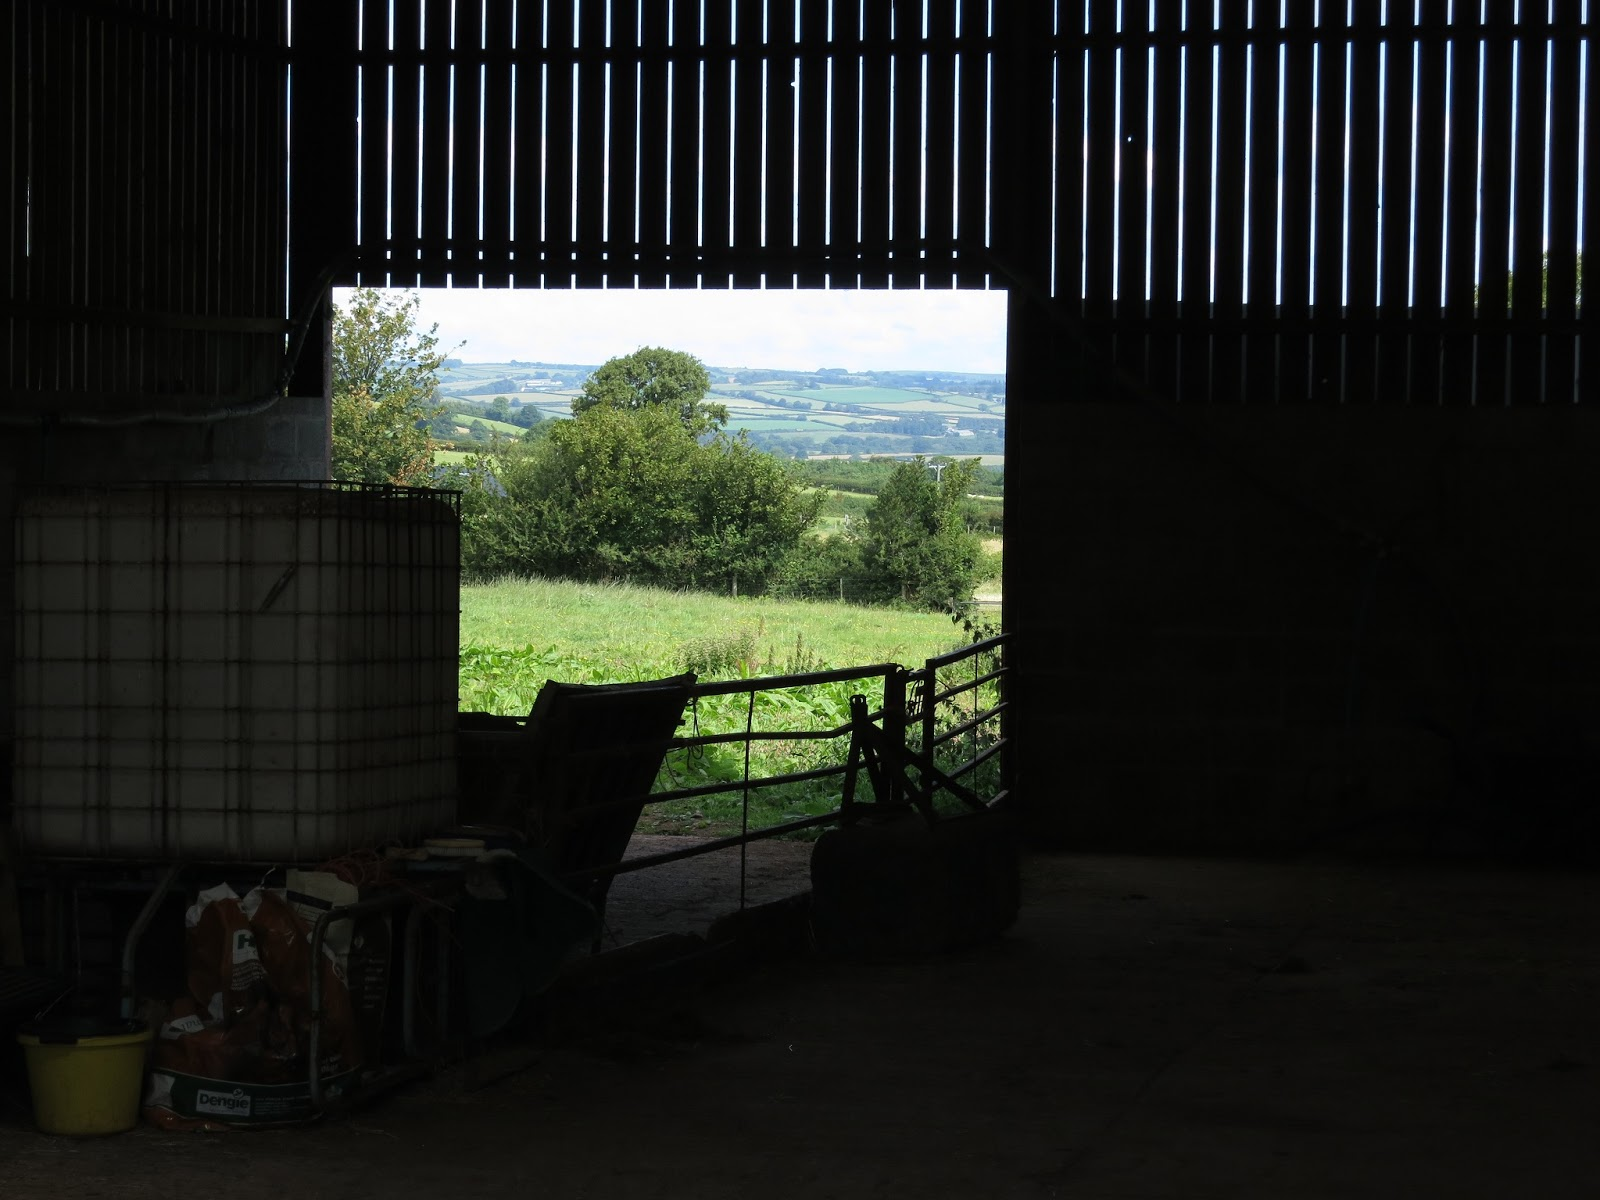 View of field and trees though open barn door with bits and bobs and gate in foreground